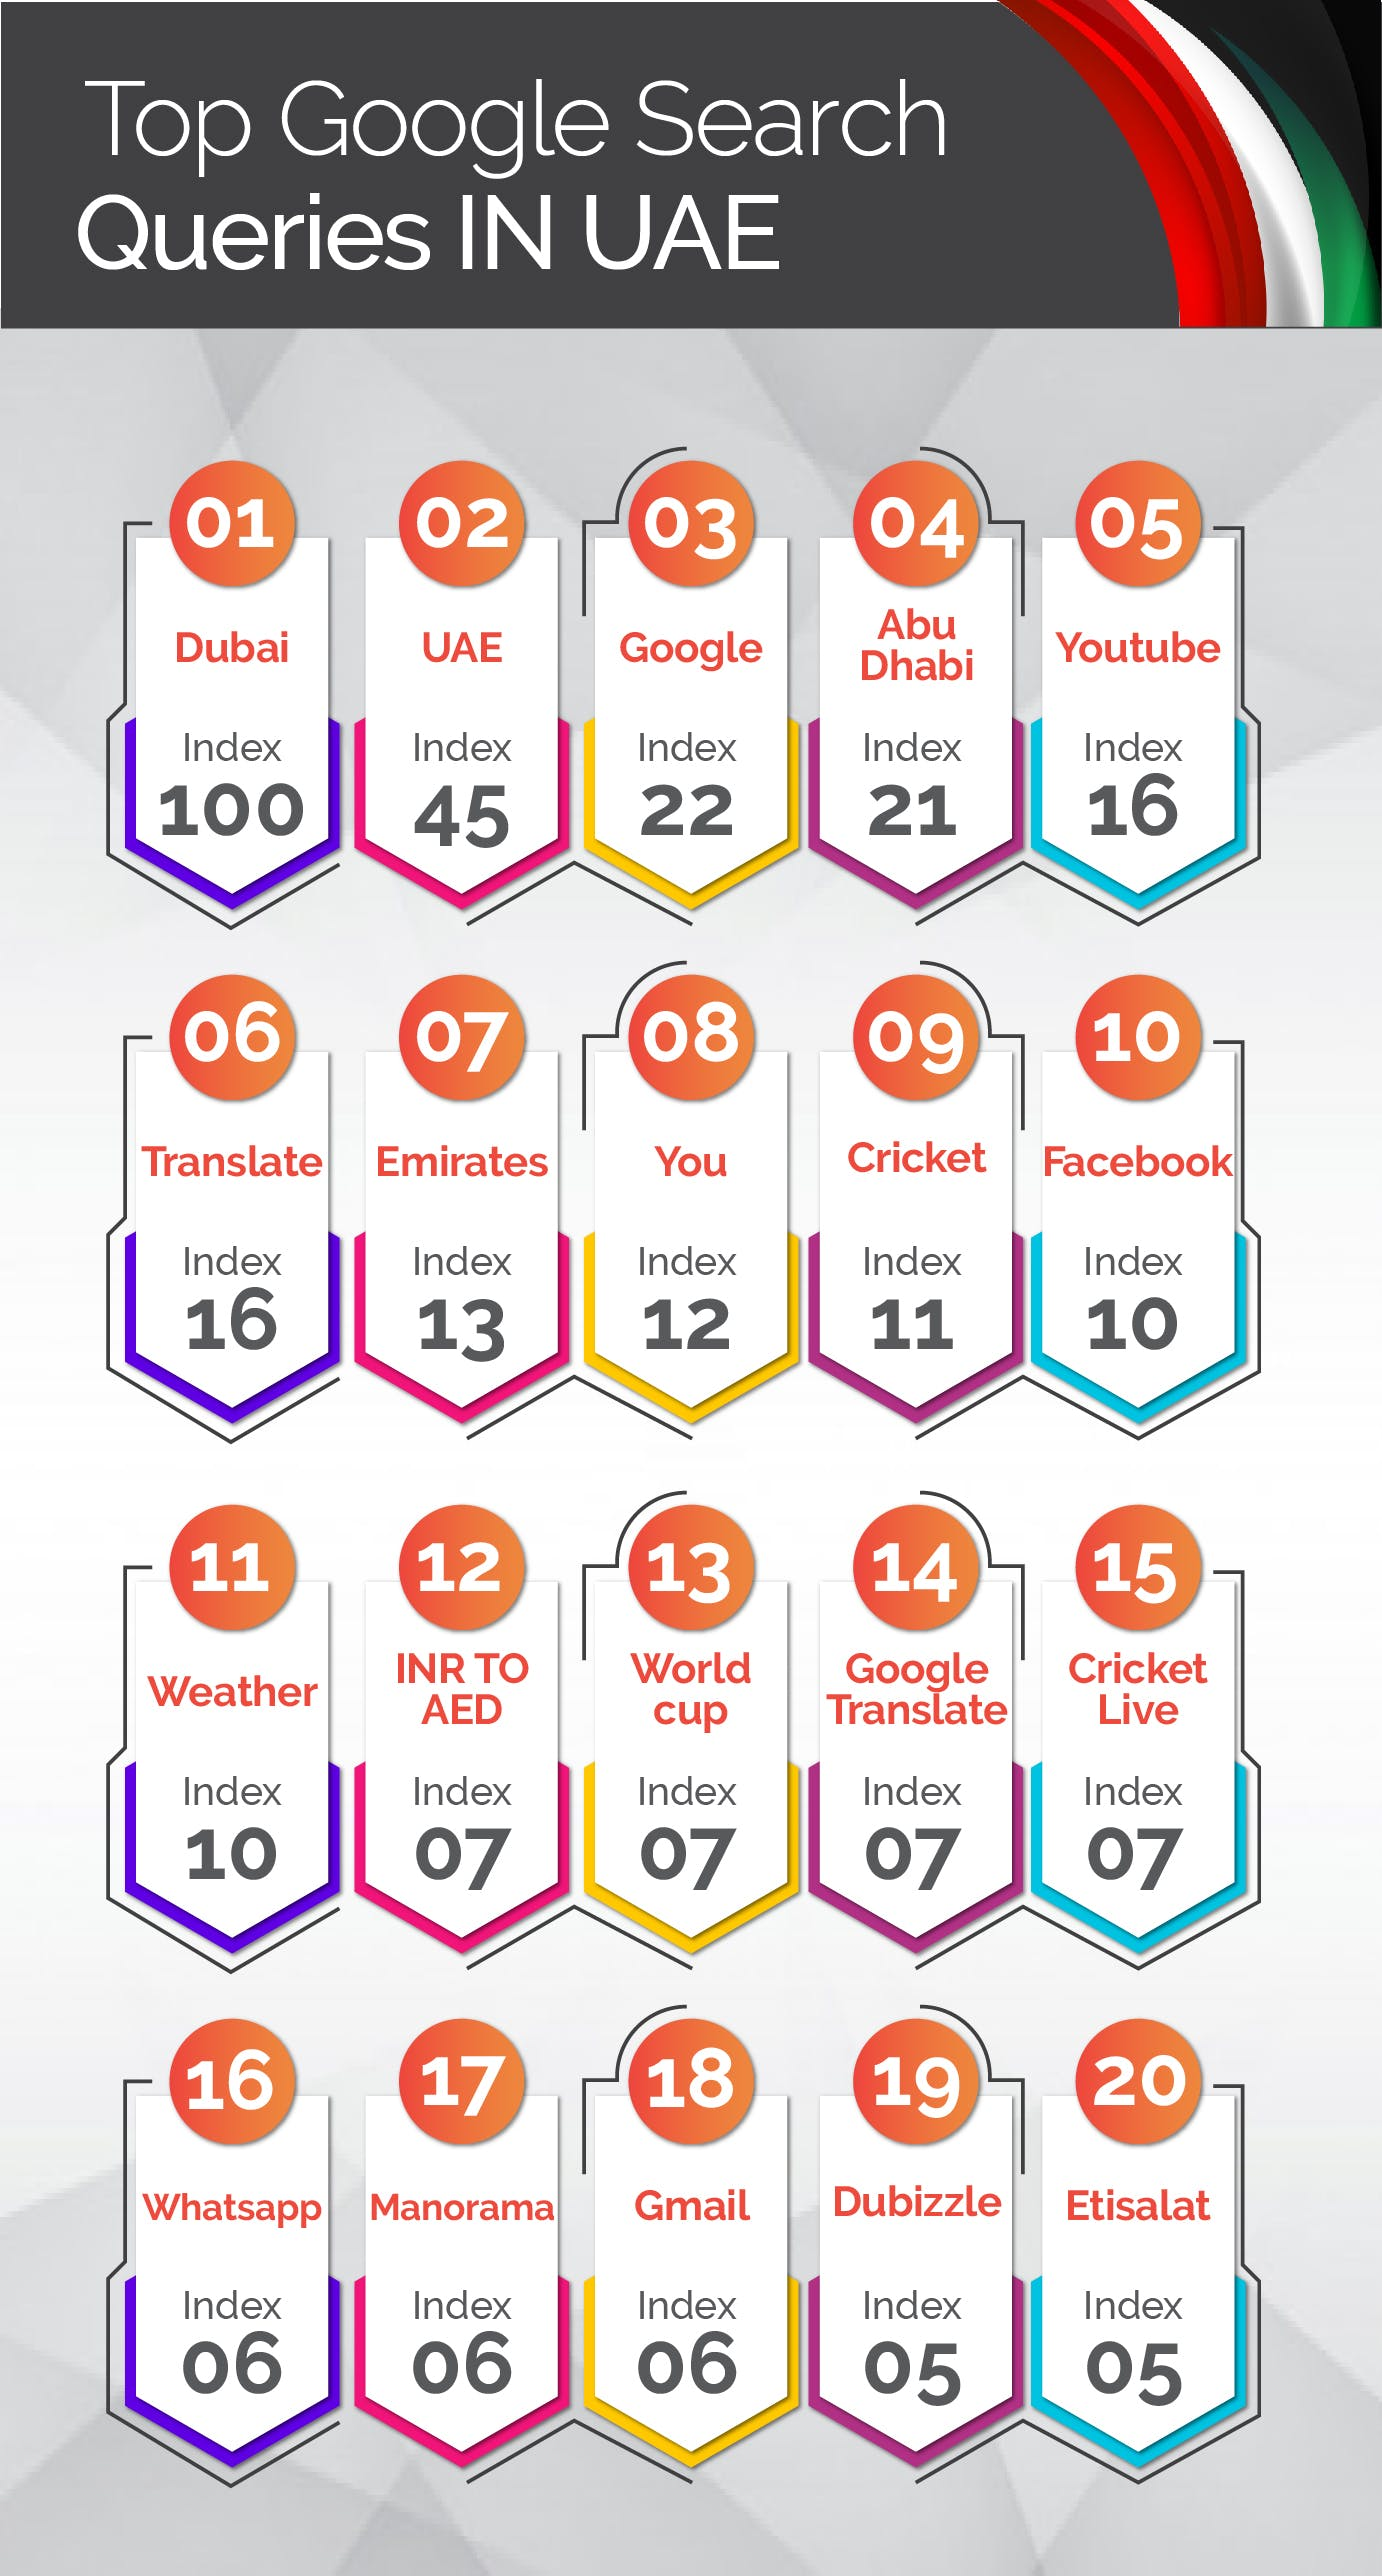 top google search queries in UAE in 2020